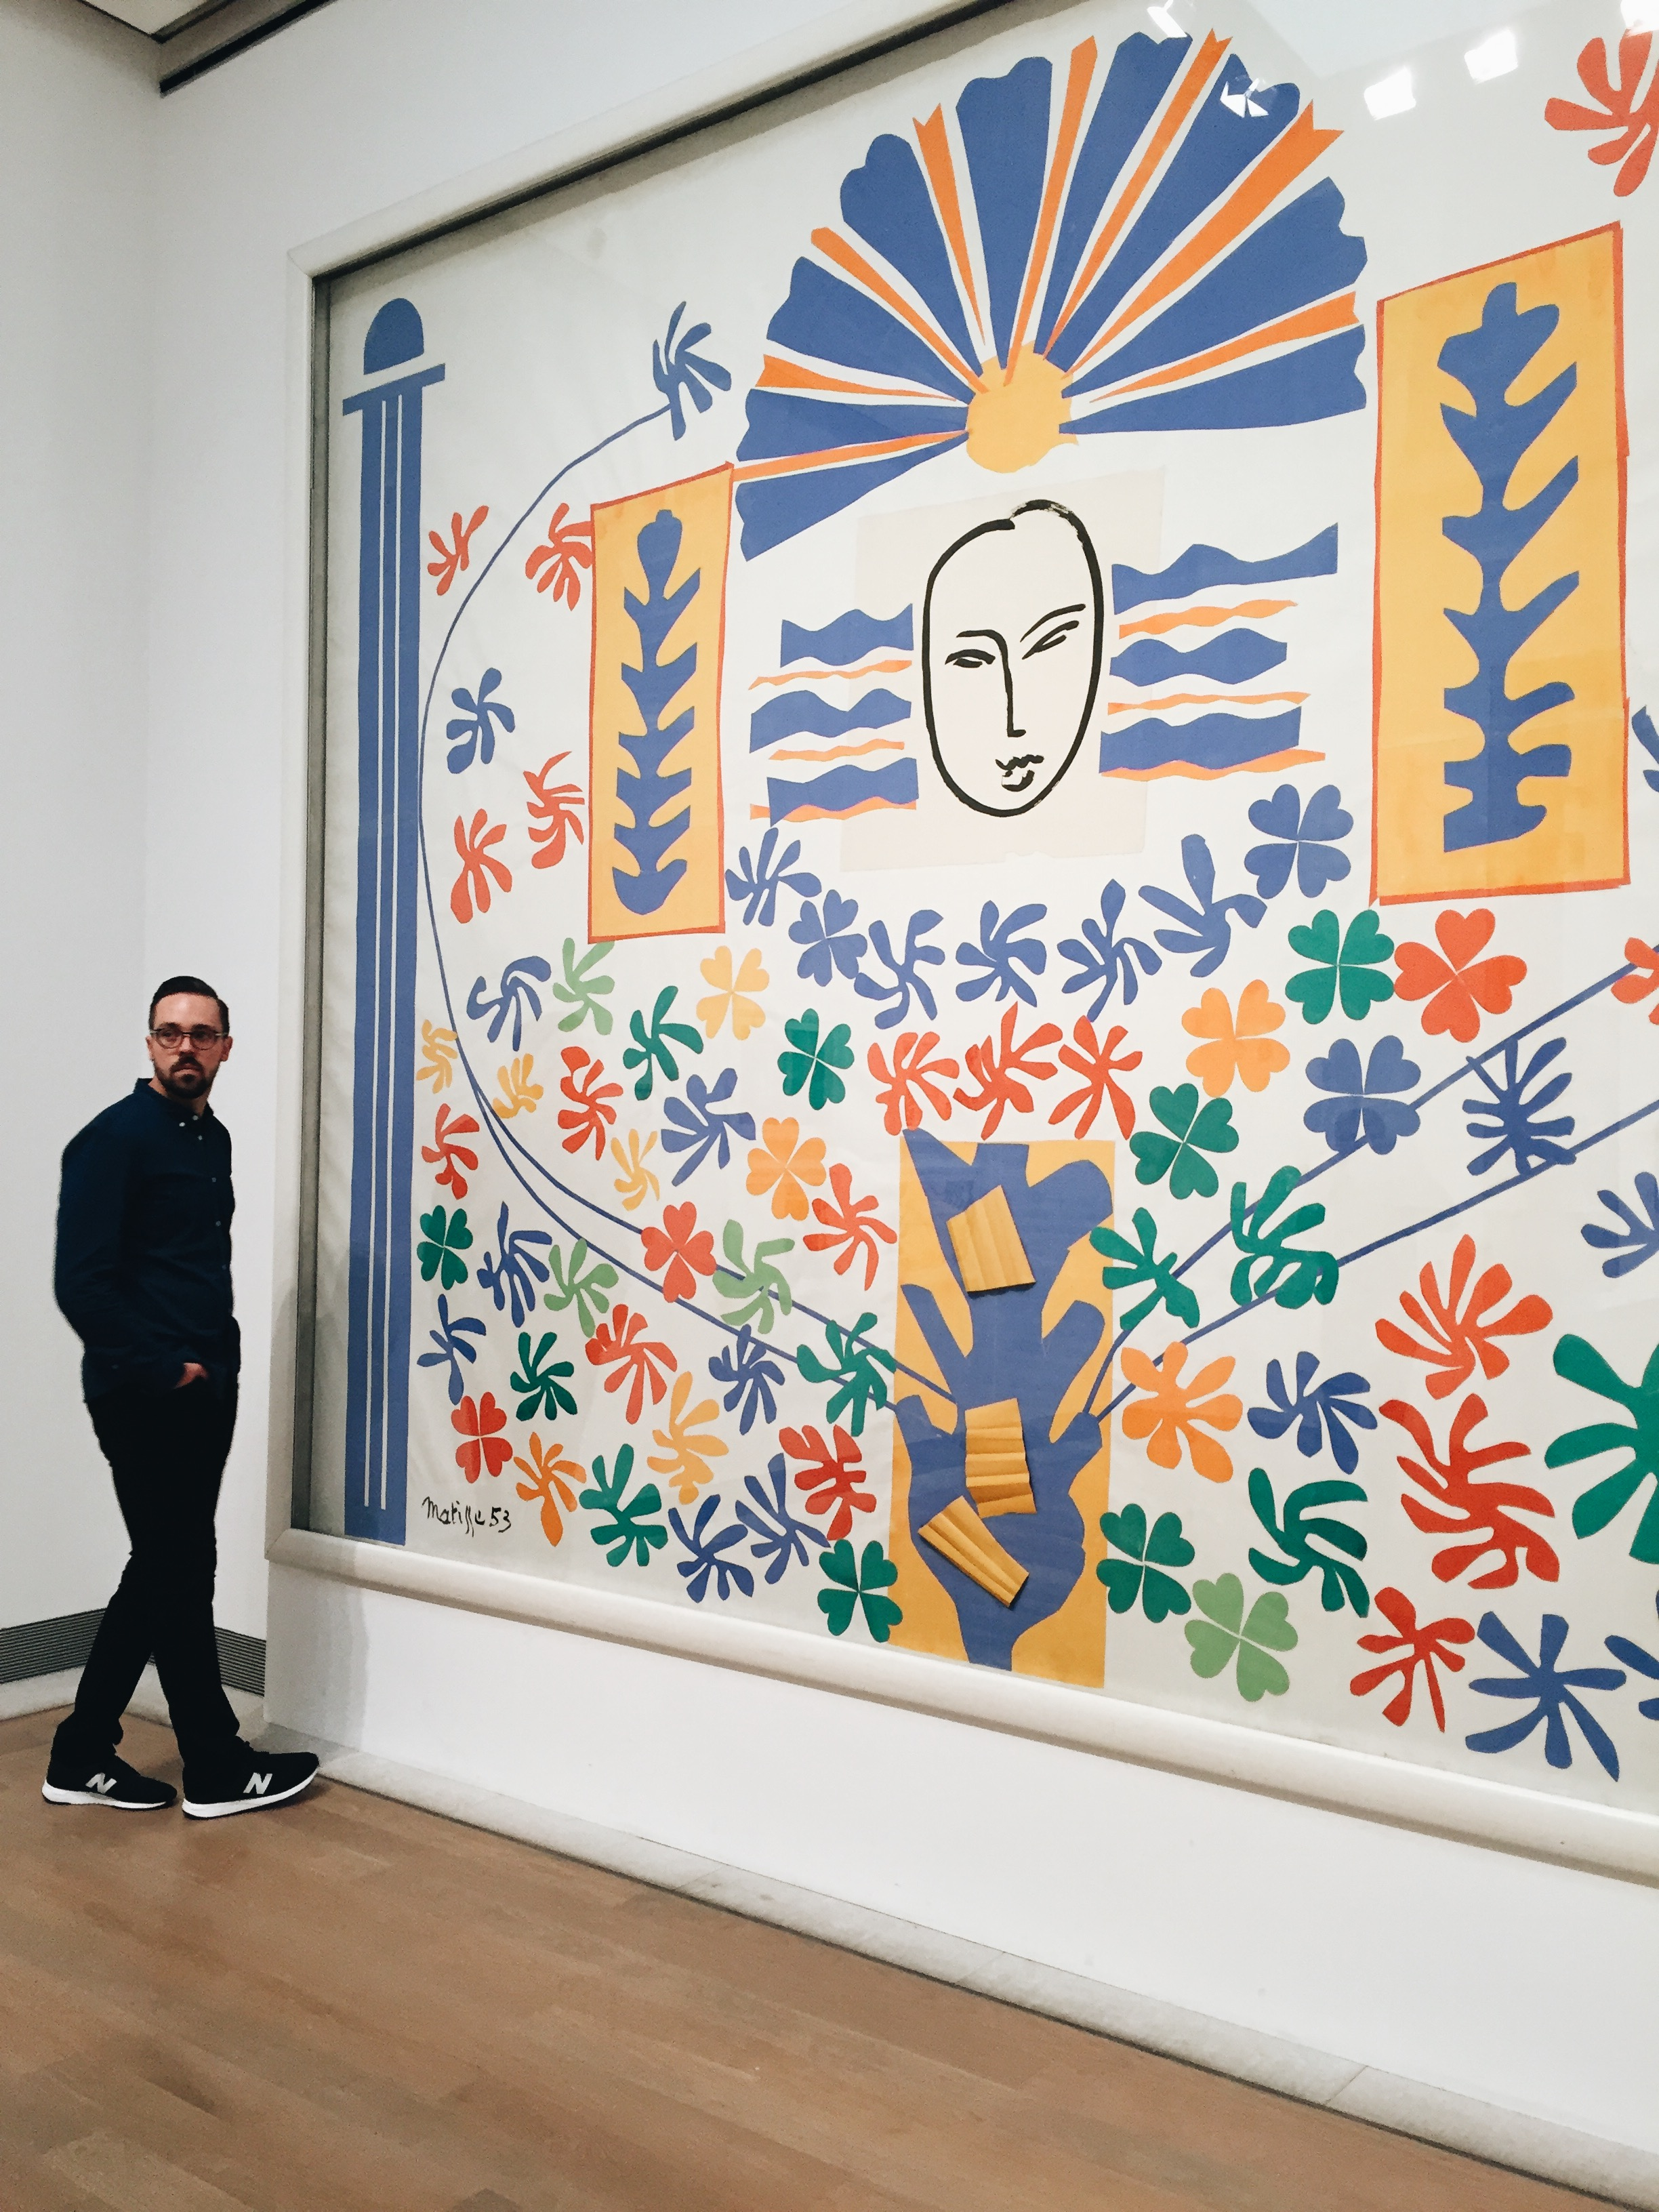 I was so excited to see this Matisse piece in real life. Clearly I'm not an art expert because it was way bigger than I'd anticipated.